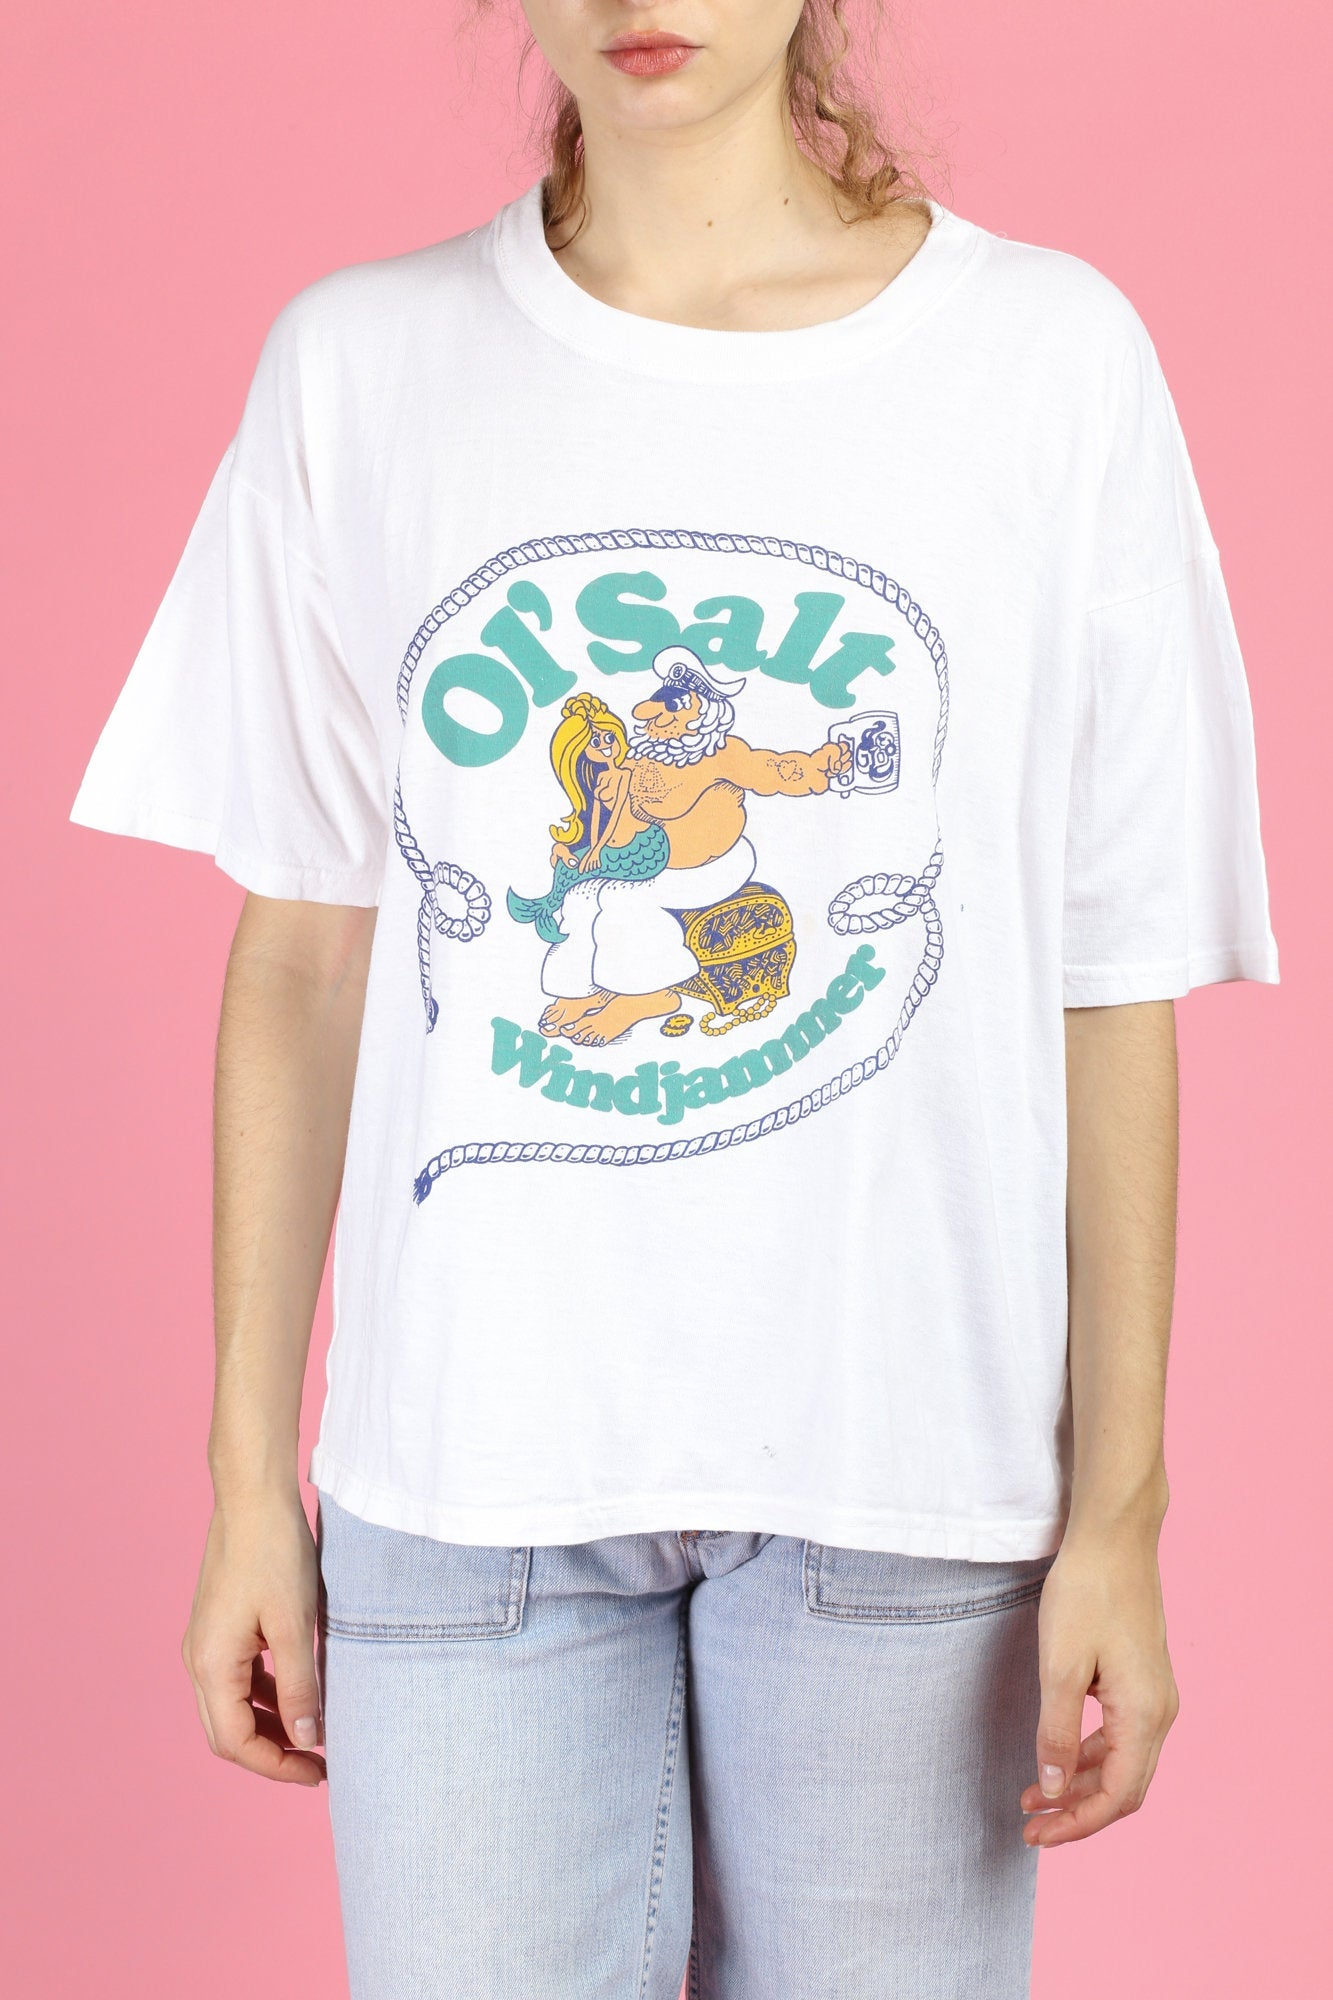 80s Mermaid & Sailor T Shirt - Extra Large